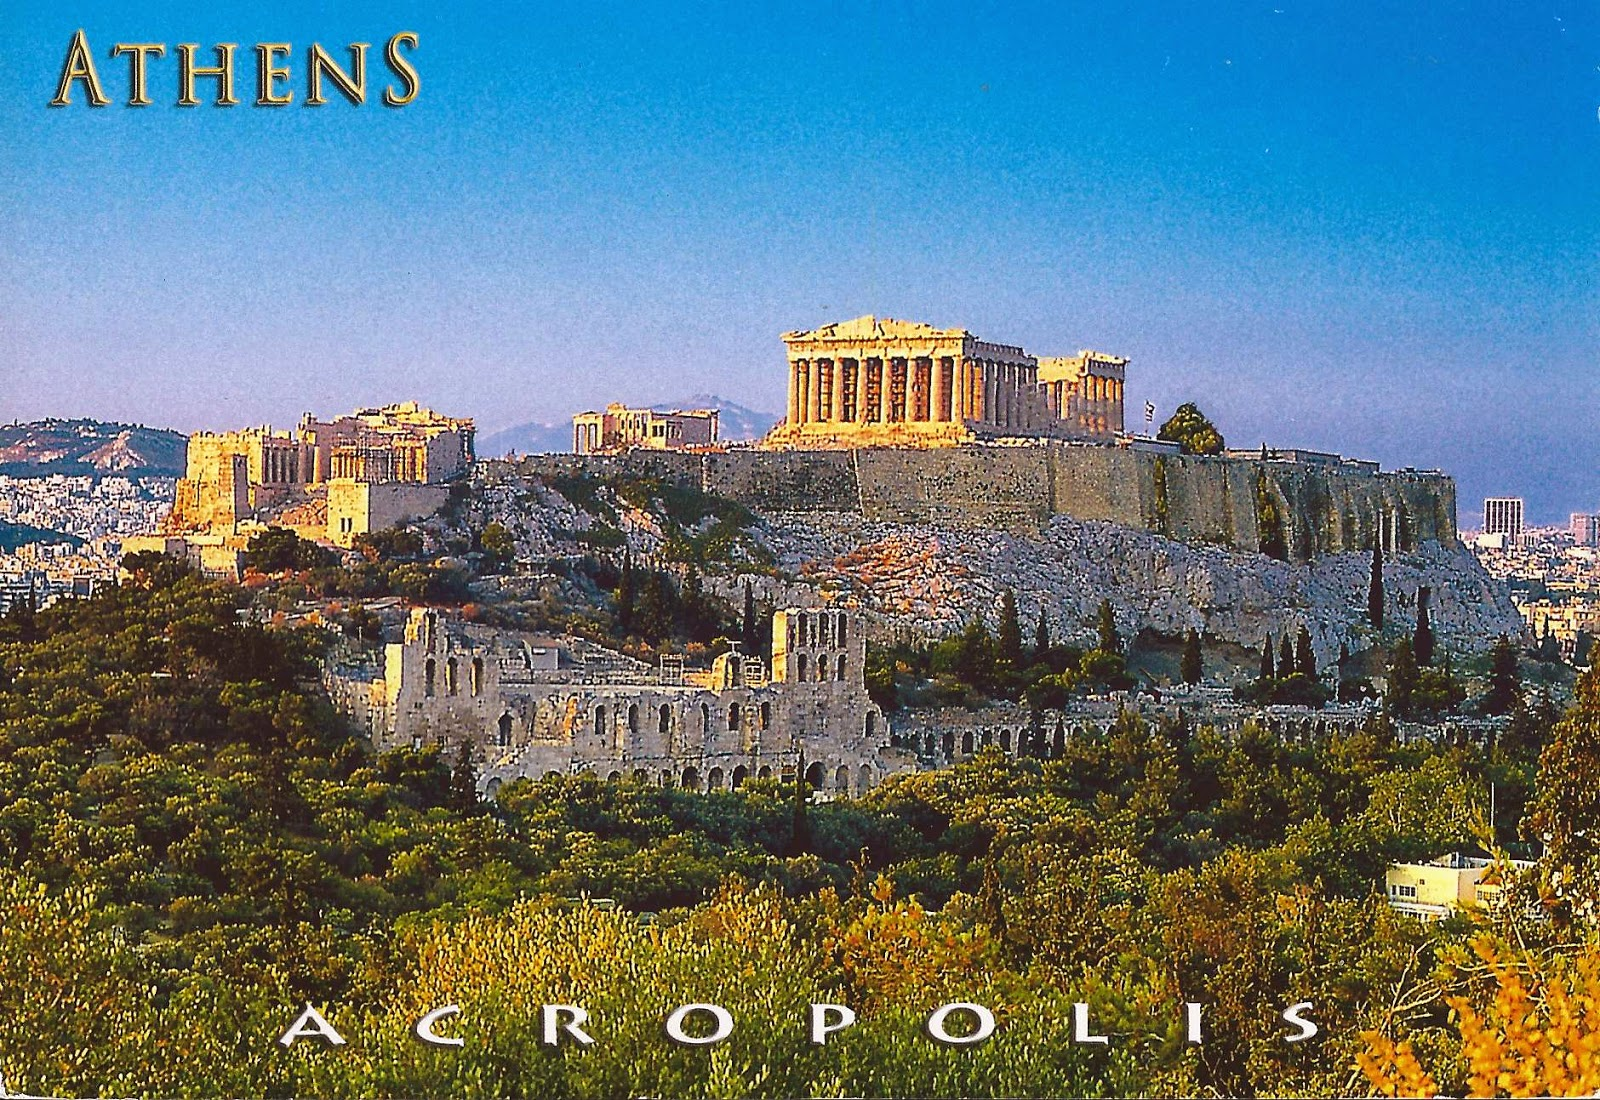 Capital of Greece